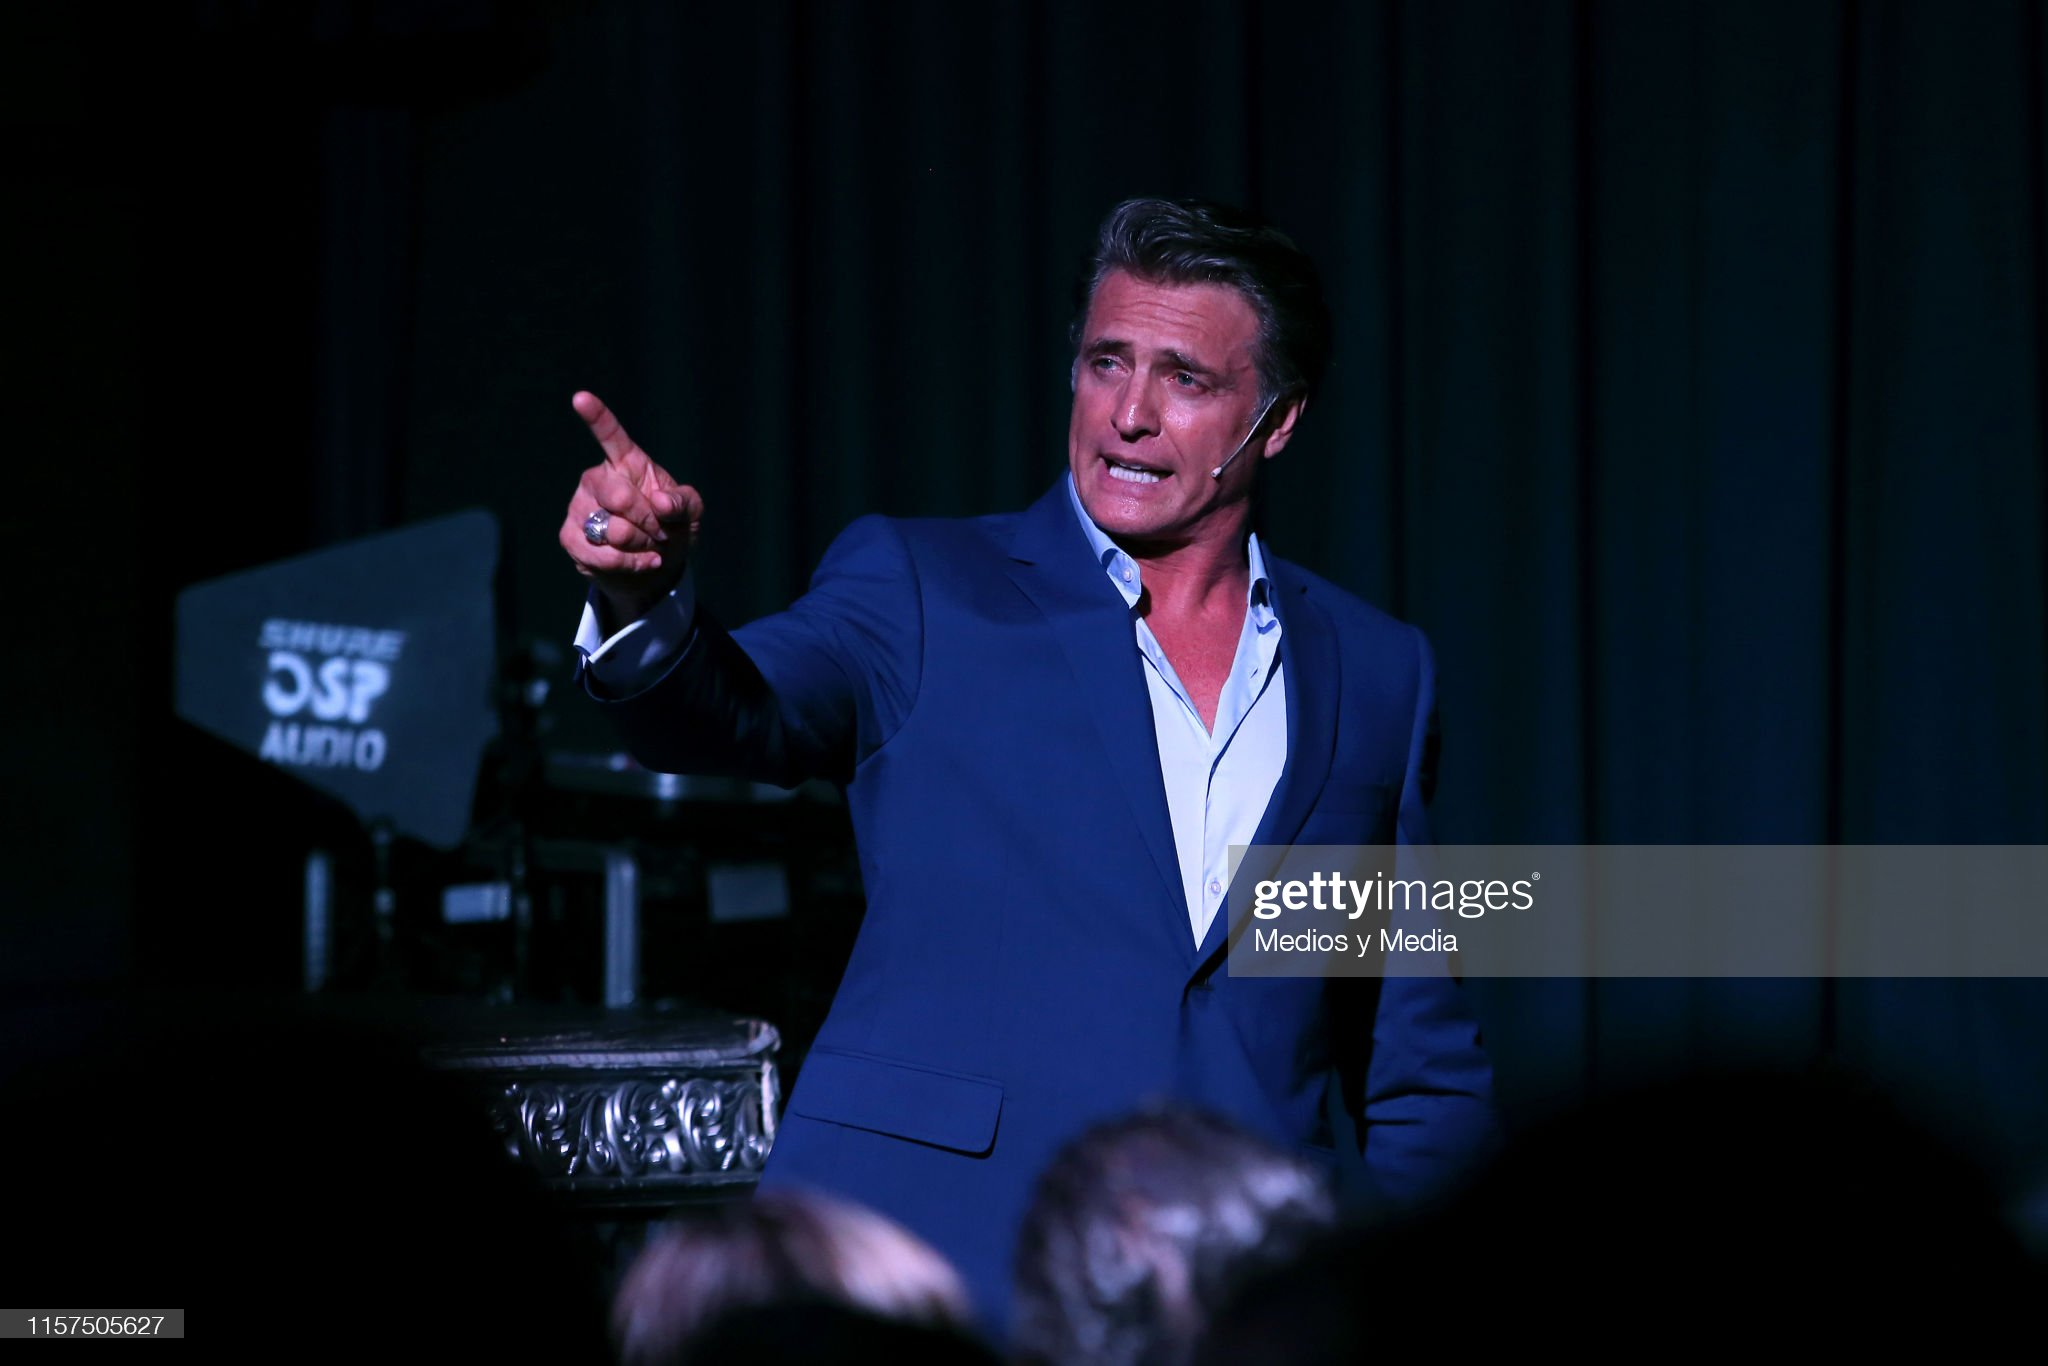 https://media.gettyimages.com/photos/juan-soler-performs-on-stage-during-the-premiere-of-la-homofobia-no-picture-id1157505627?s=2048x2048